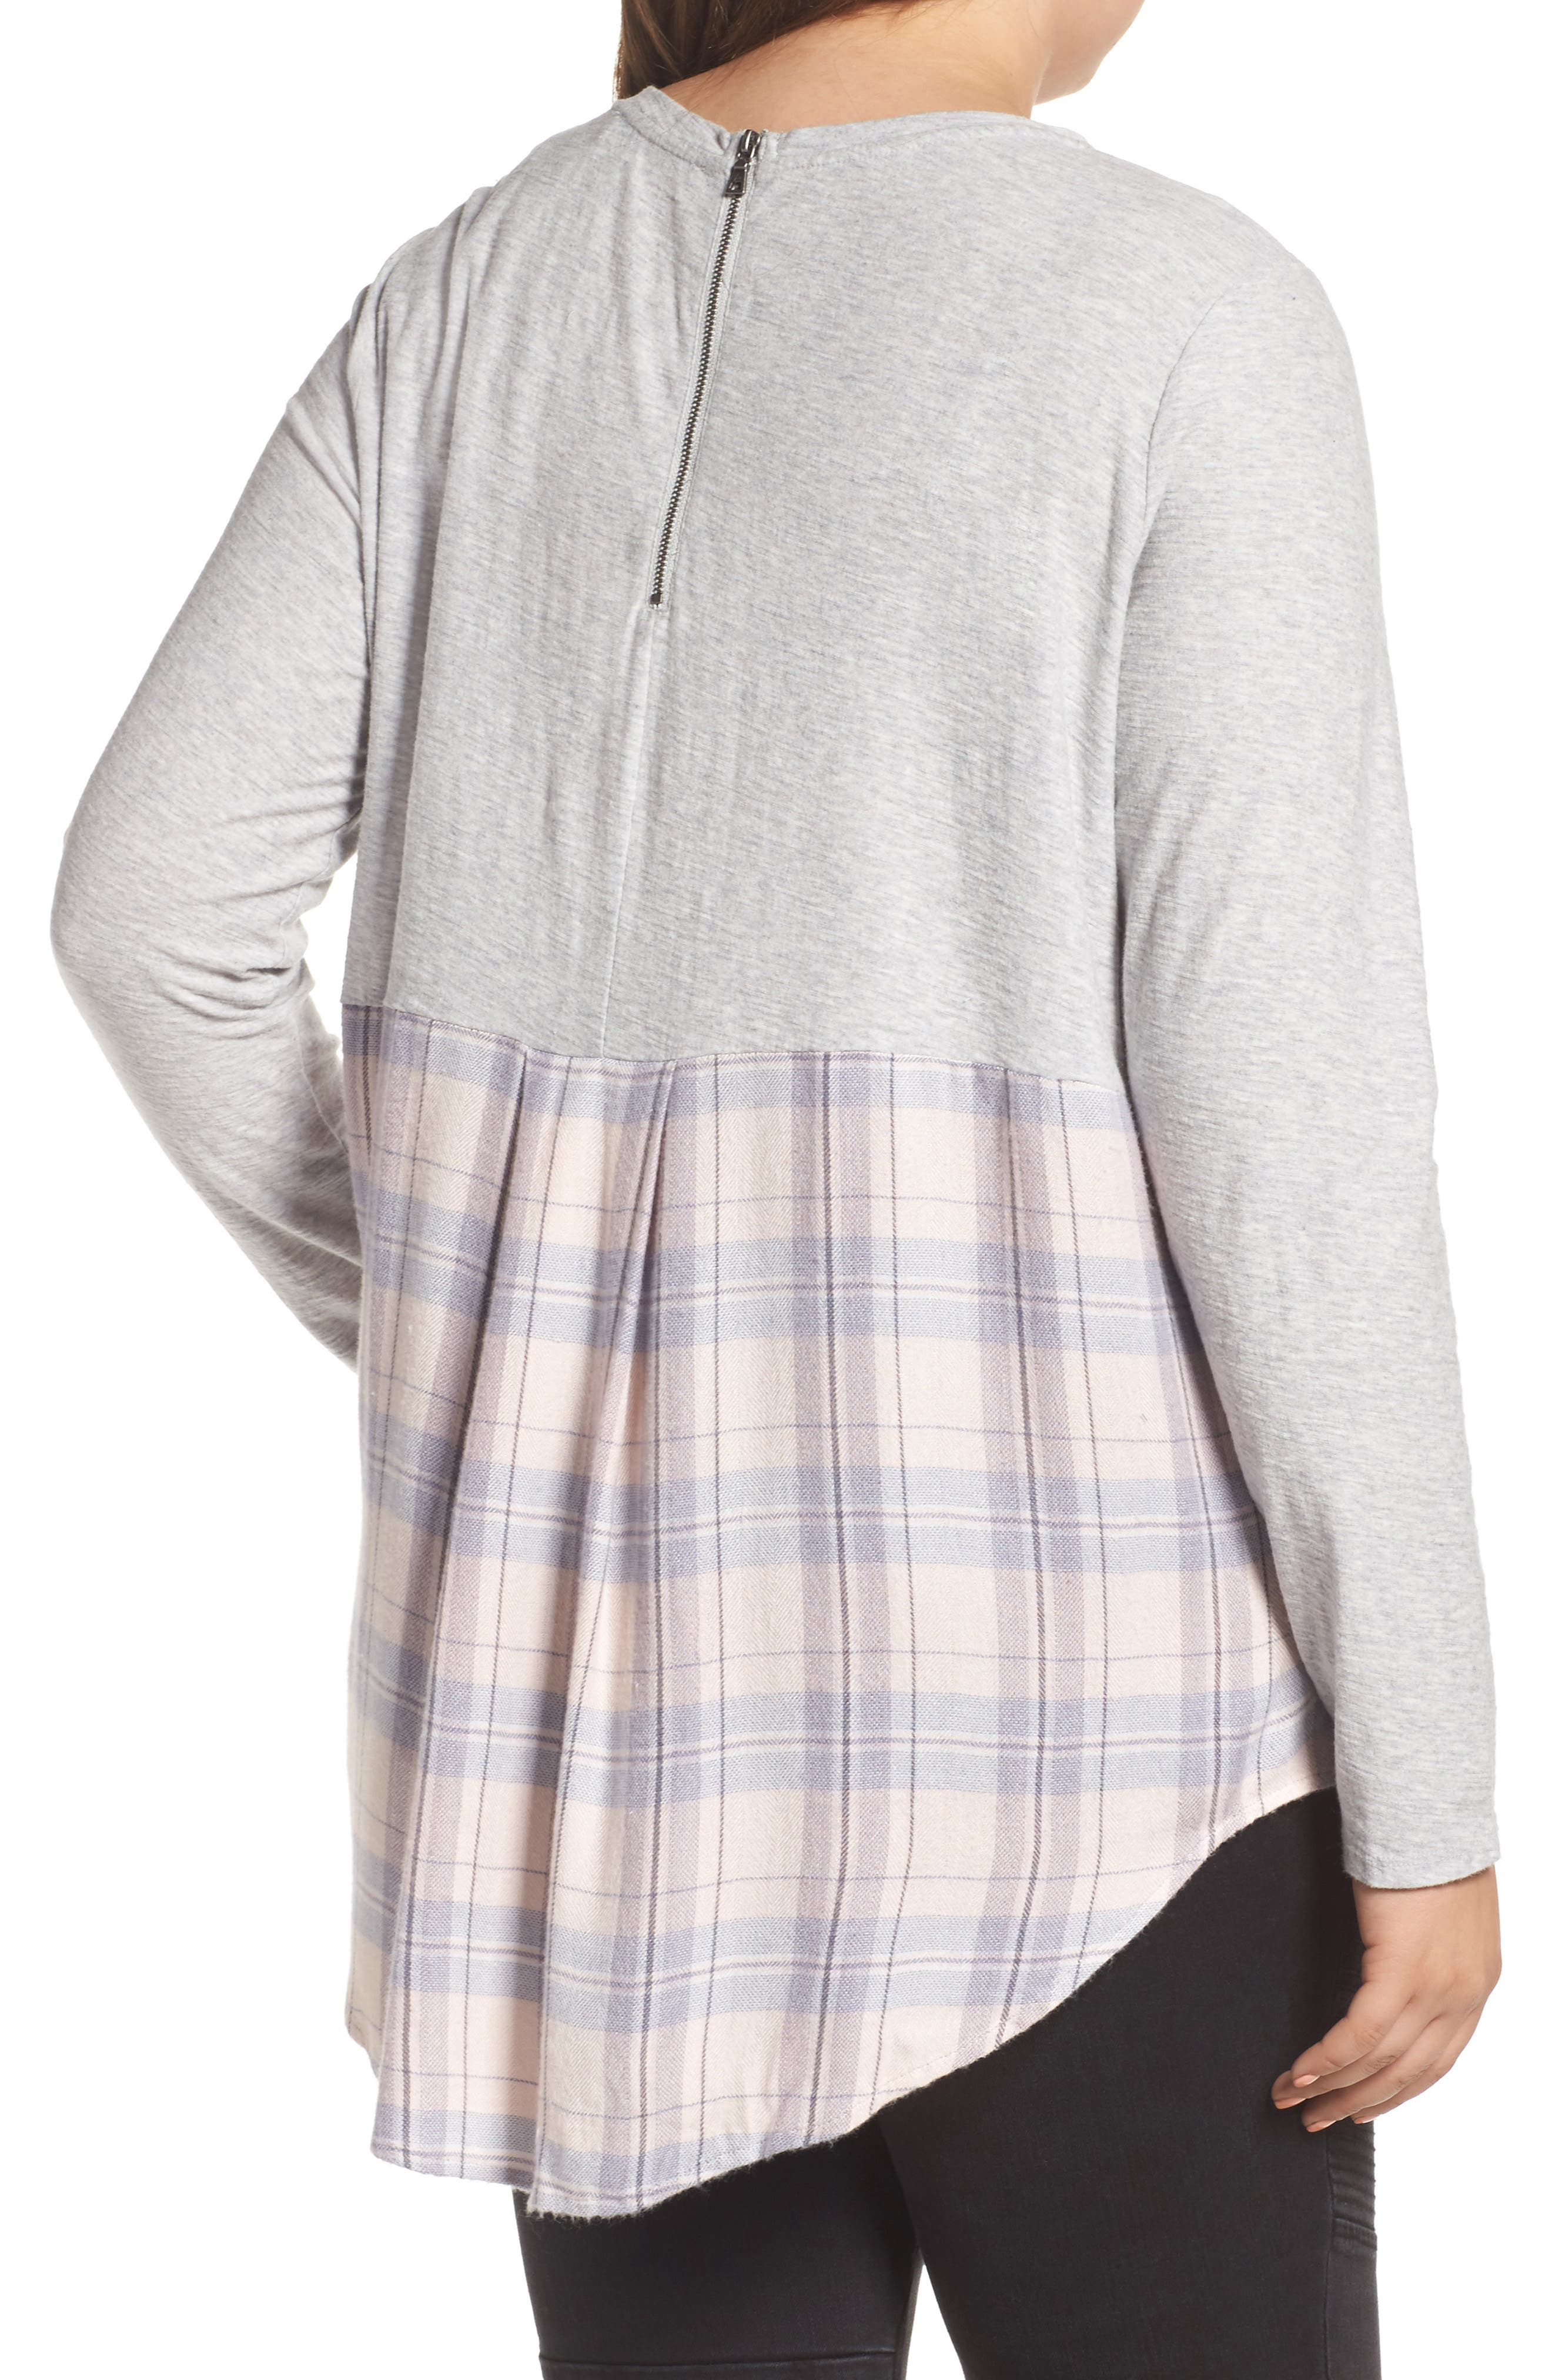 Alternate Image 2  - Two by Vince Camuto Mixed Media Plaid Top (Plus Size)